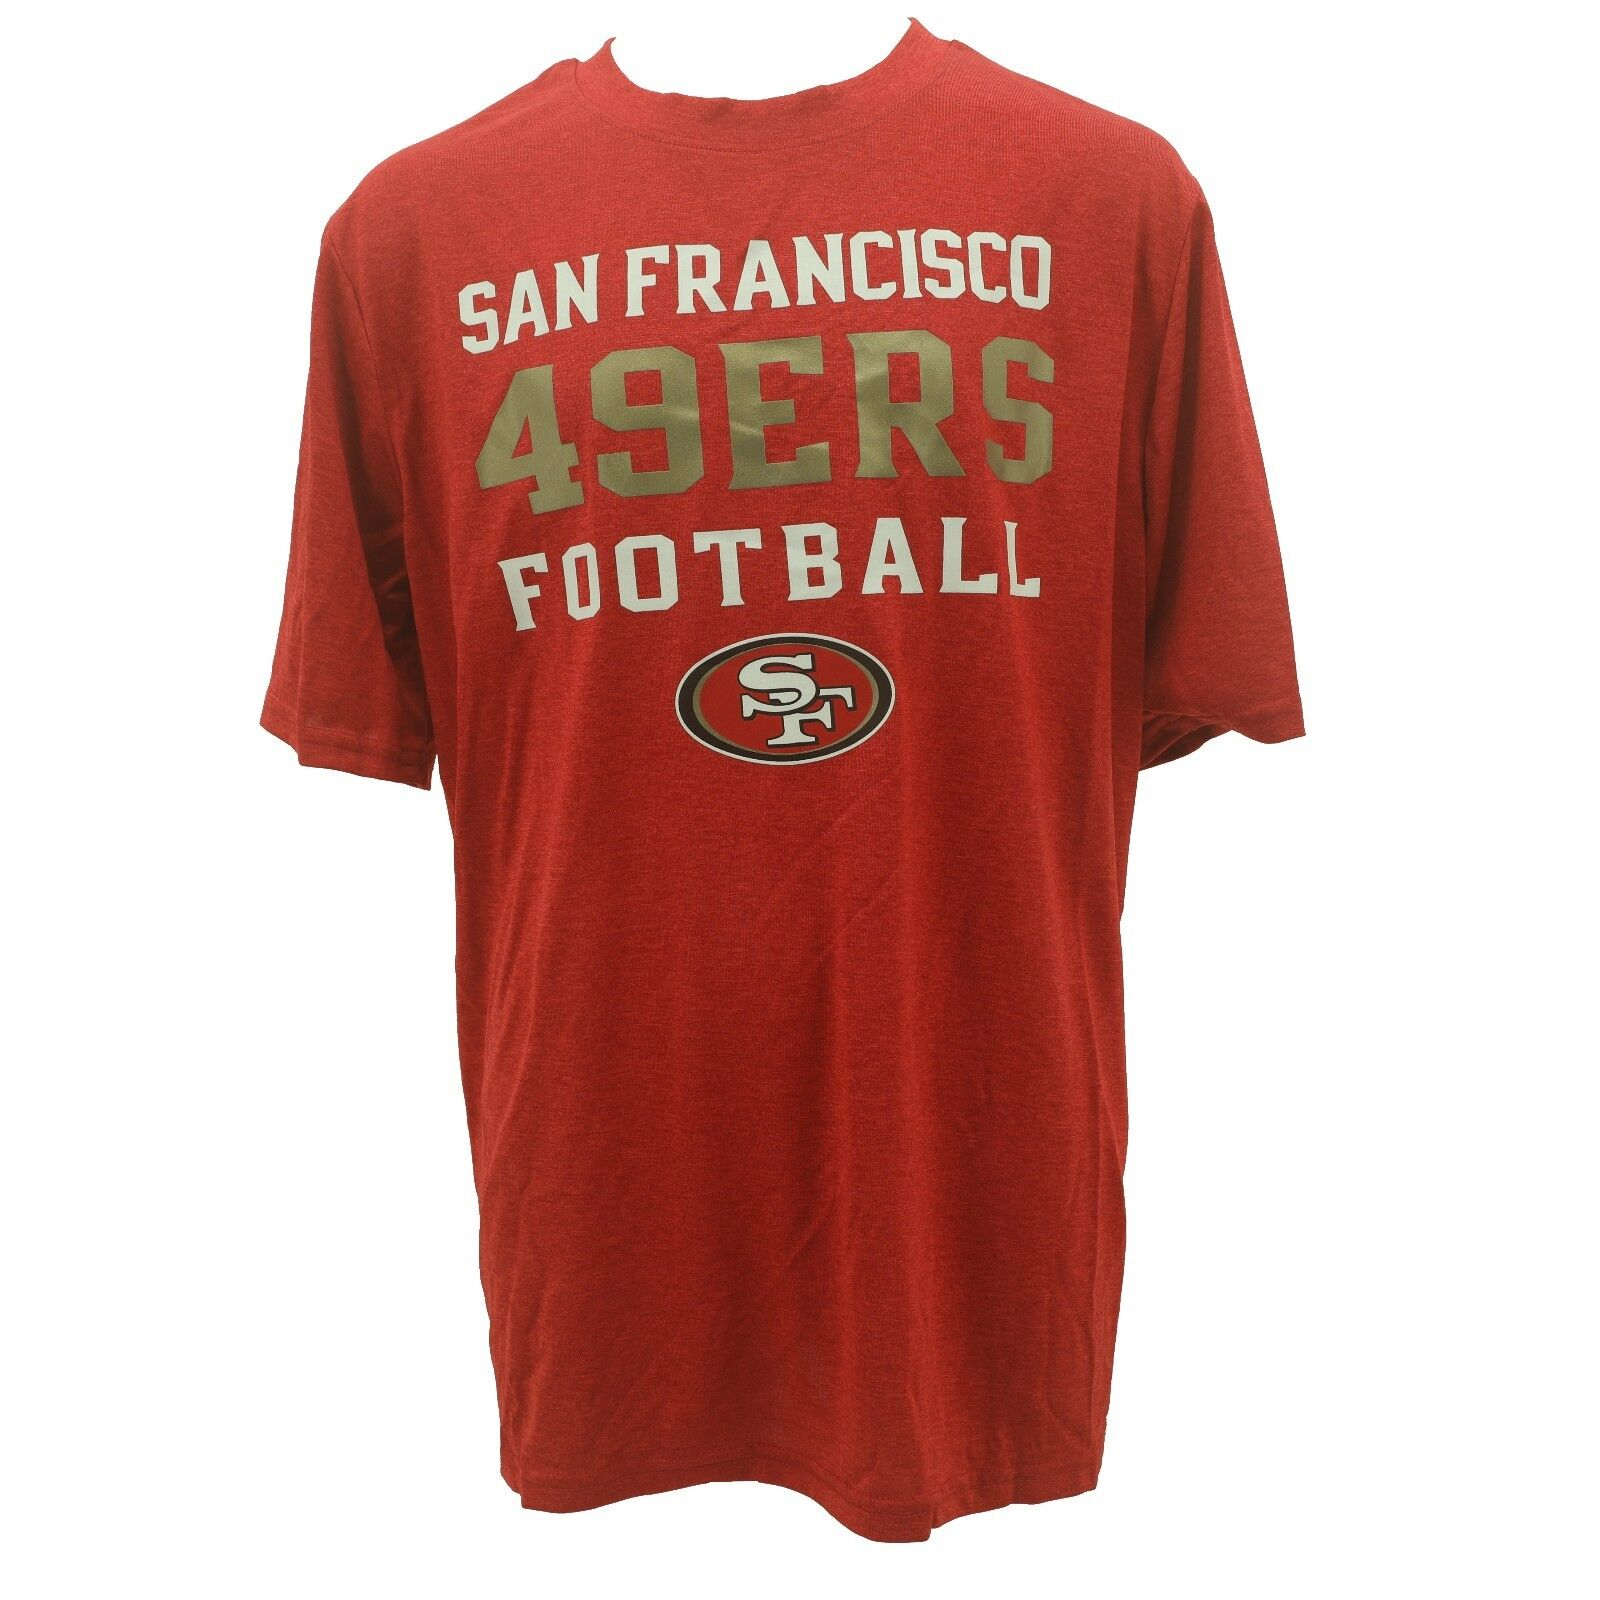 Details about San Francisco 49ers Youth   Kids Sizes 100% Polyester NFL  Athletic T-Shirt New 013cb2fe8